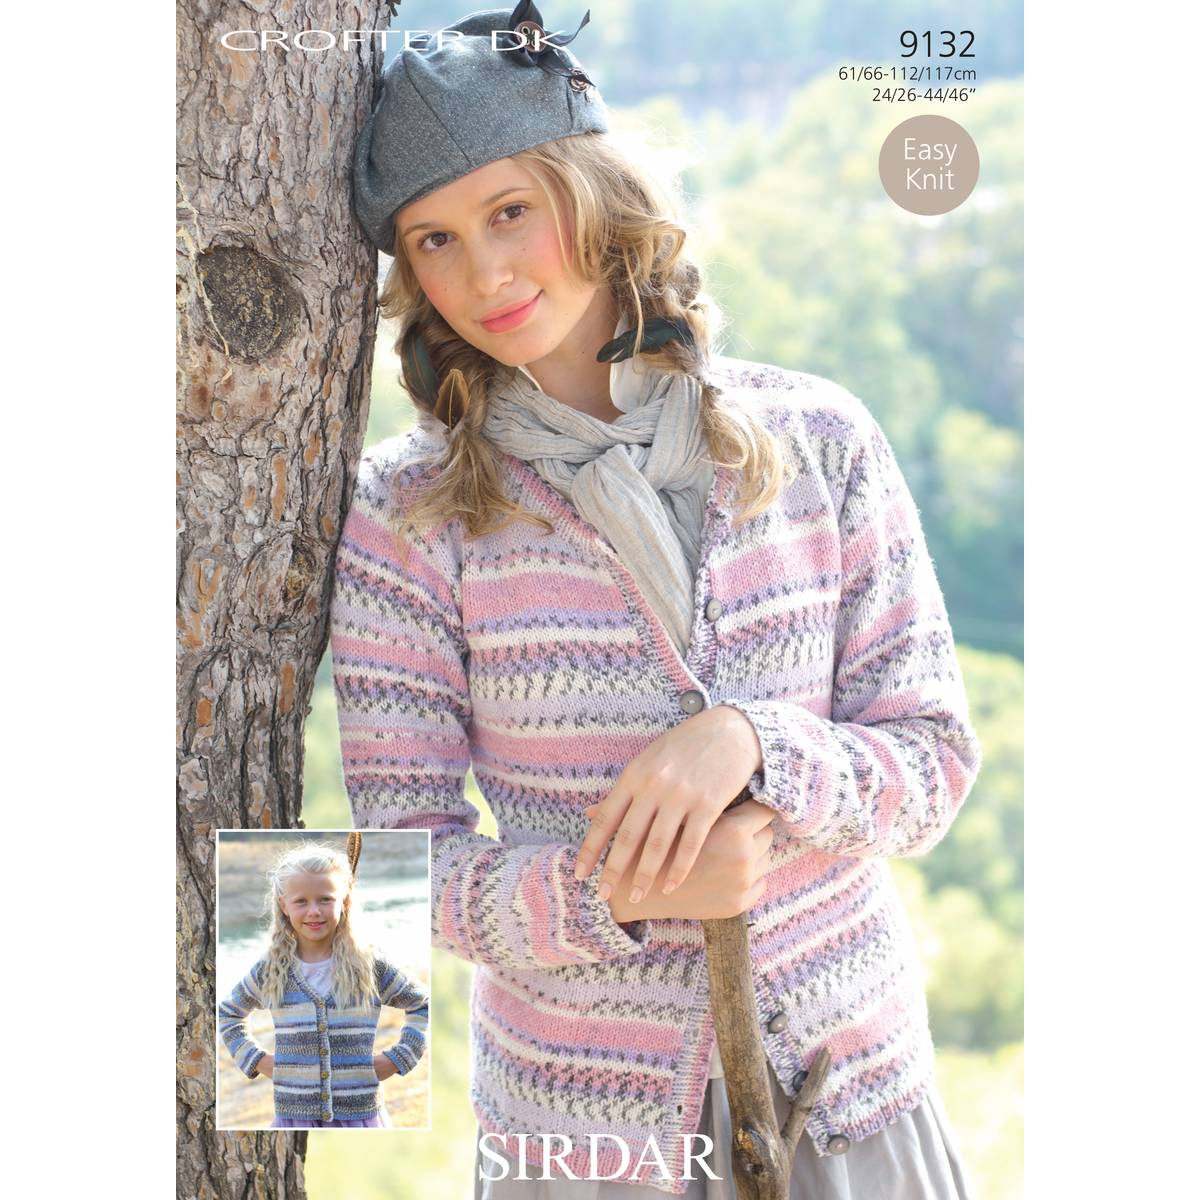 Free Baby Knitting Patterns Double Knit Free Pattern Knit Sirdar Crofter Dk Ladies Cardigans Hobcraft